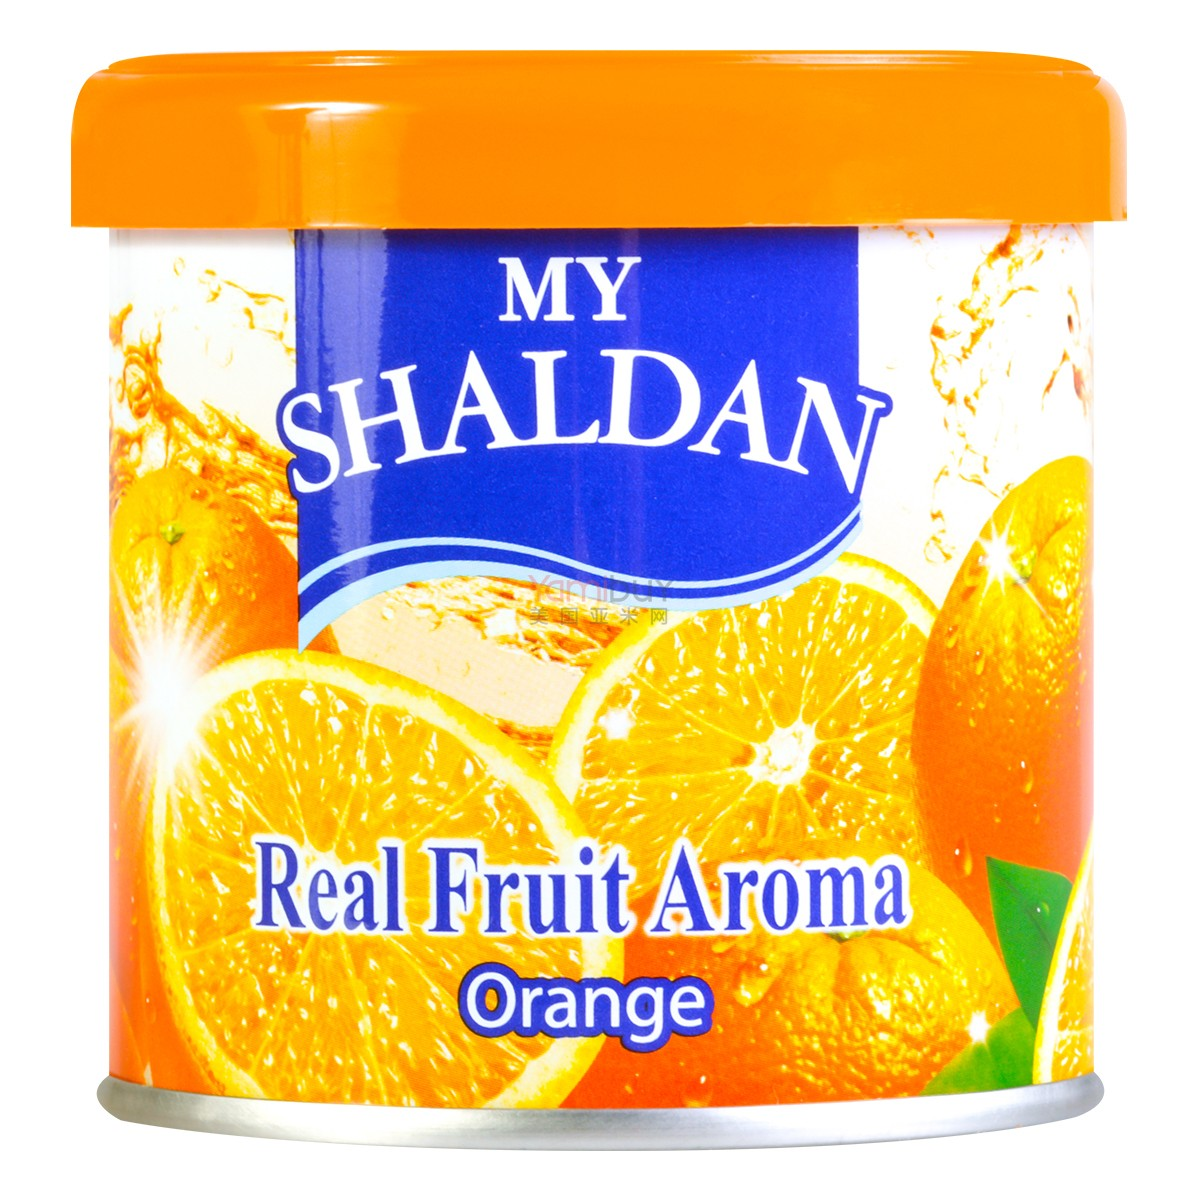 MY SHALDAN Real Fruit Aroma Air Freshener Orange 80g